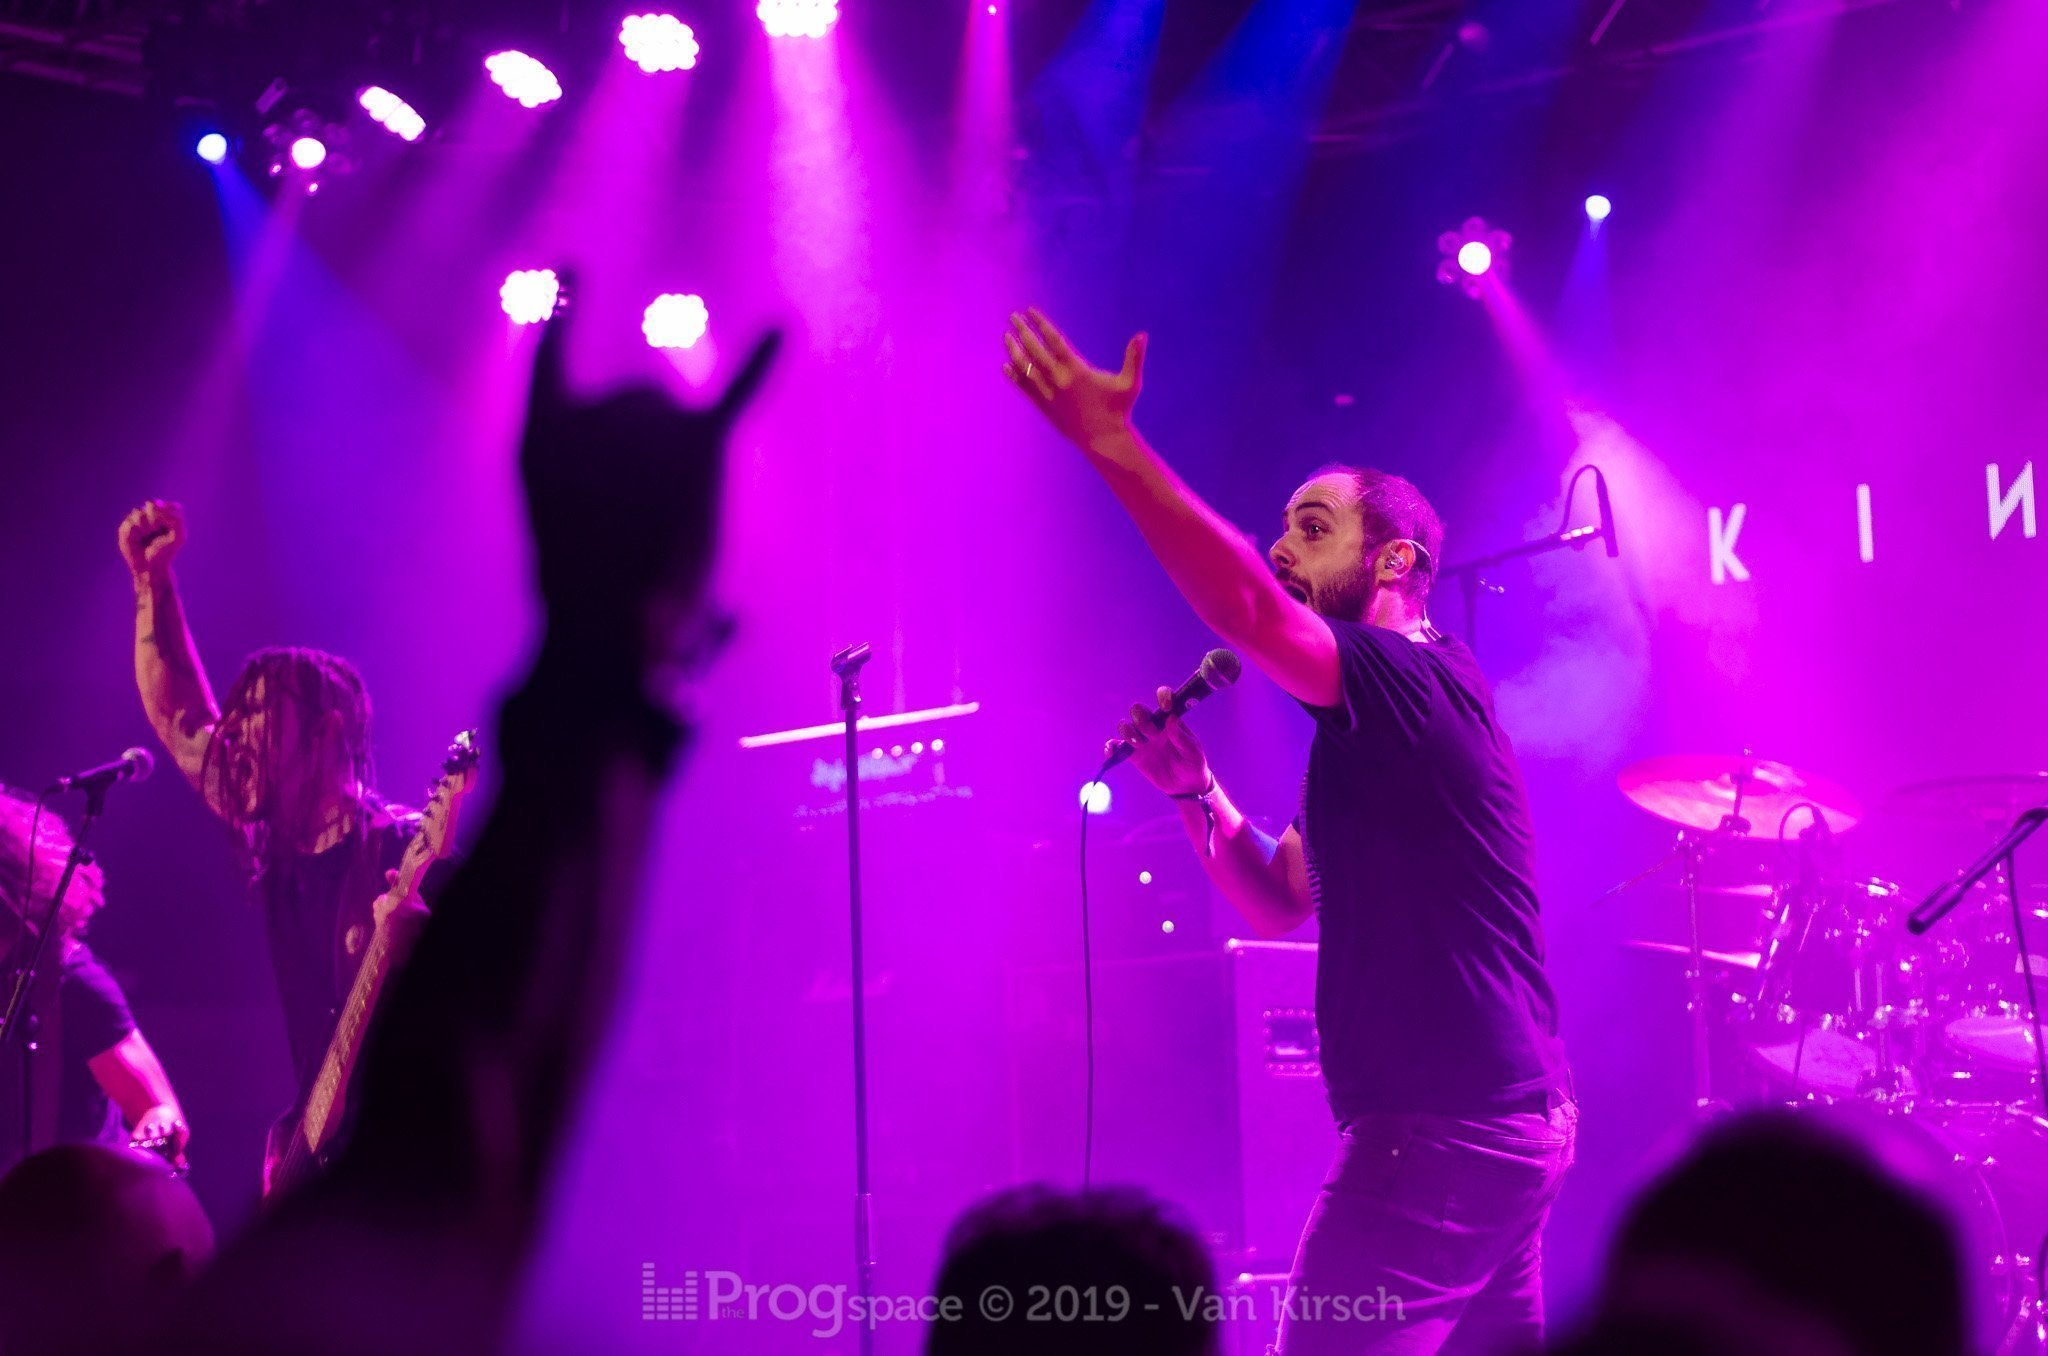 Progpower Europe 2019: Kingcrow